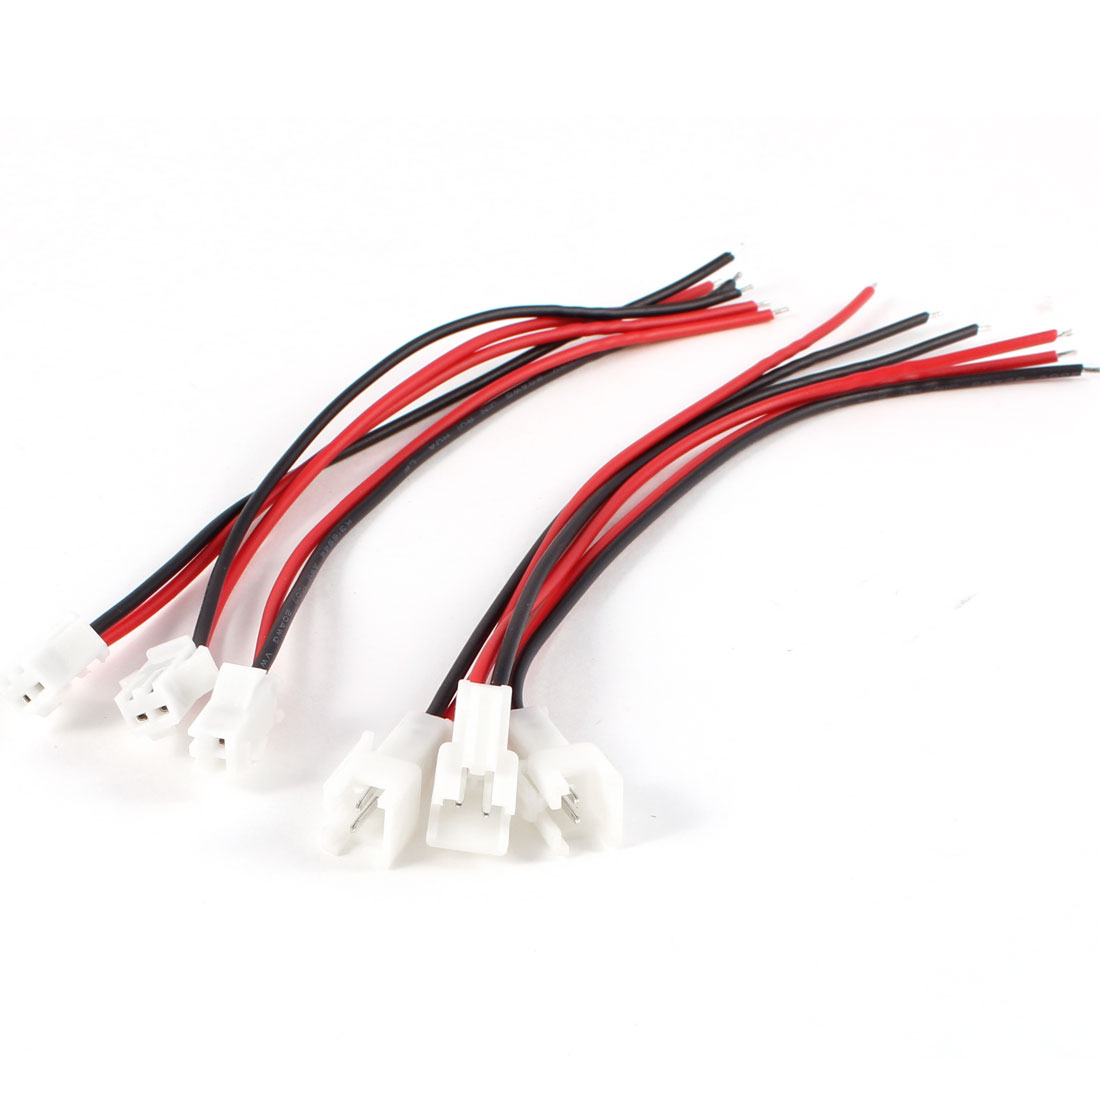 3 Pcs Neon Glow EL Wire Cable 2 Terminal Connector Plug Female + Male Black Red